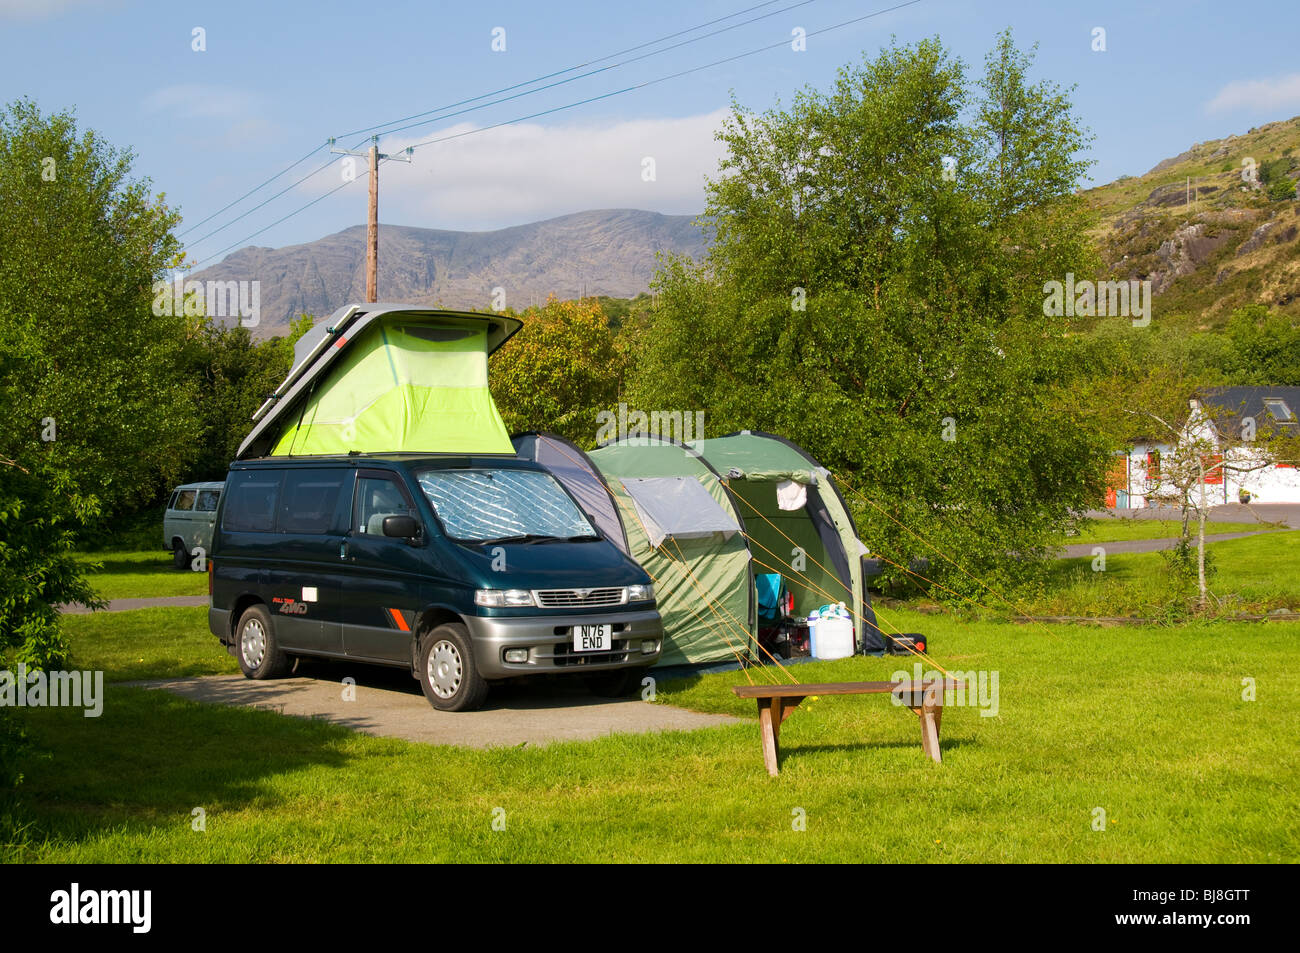 A Small Campervan With Side Awning On Camp Site At Adrigole Beara Peninsula County Cork Ireland Hungry Hill Behind